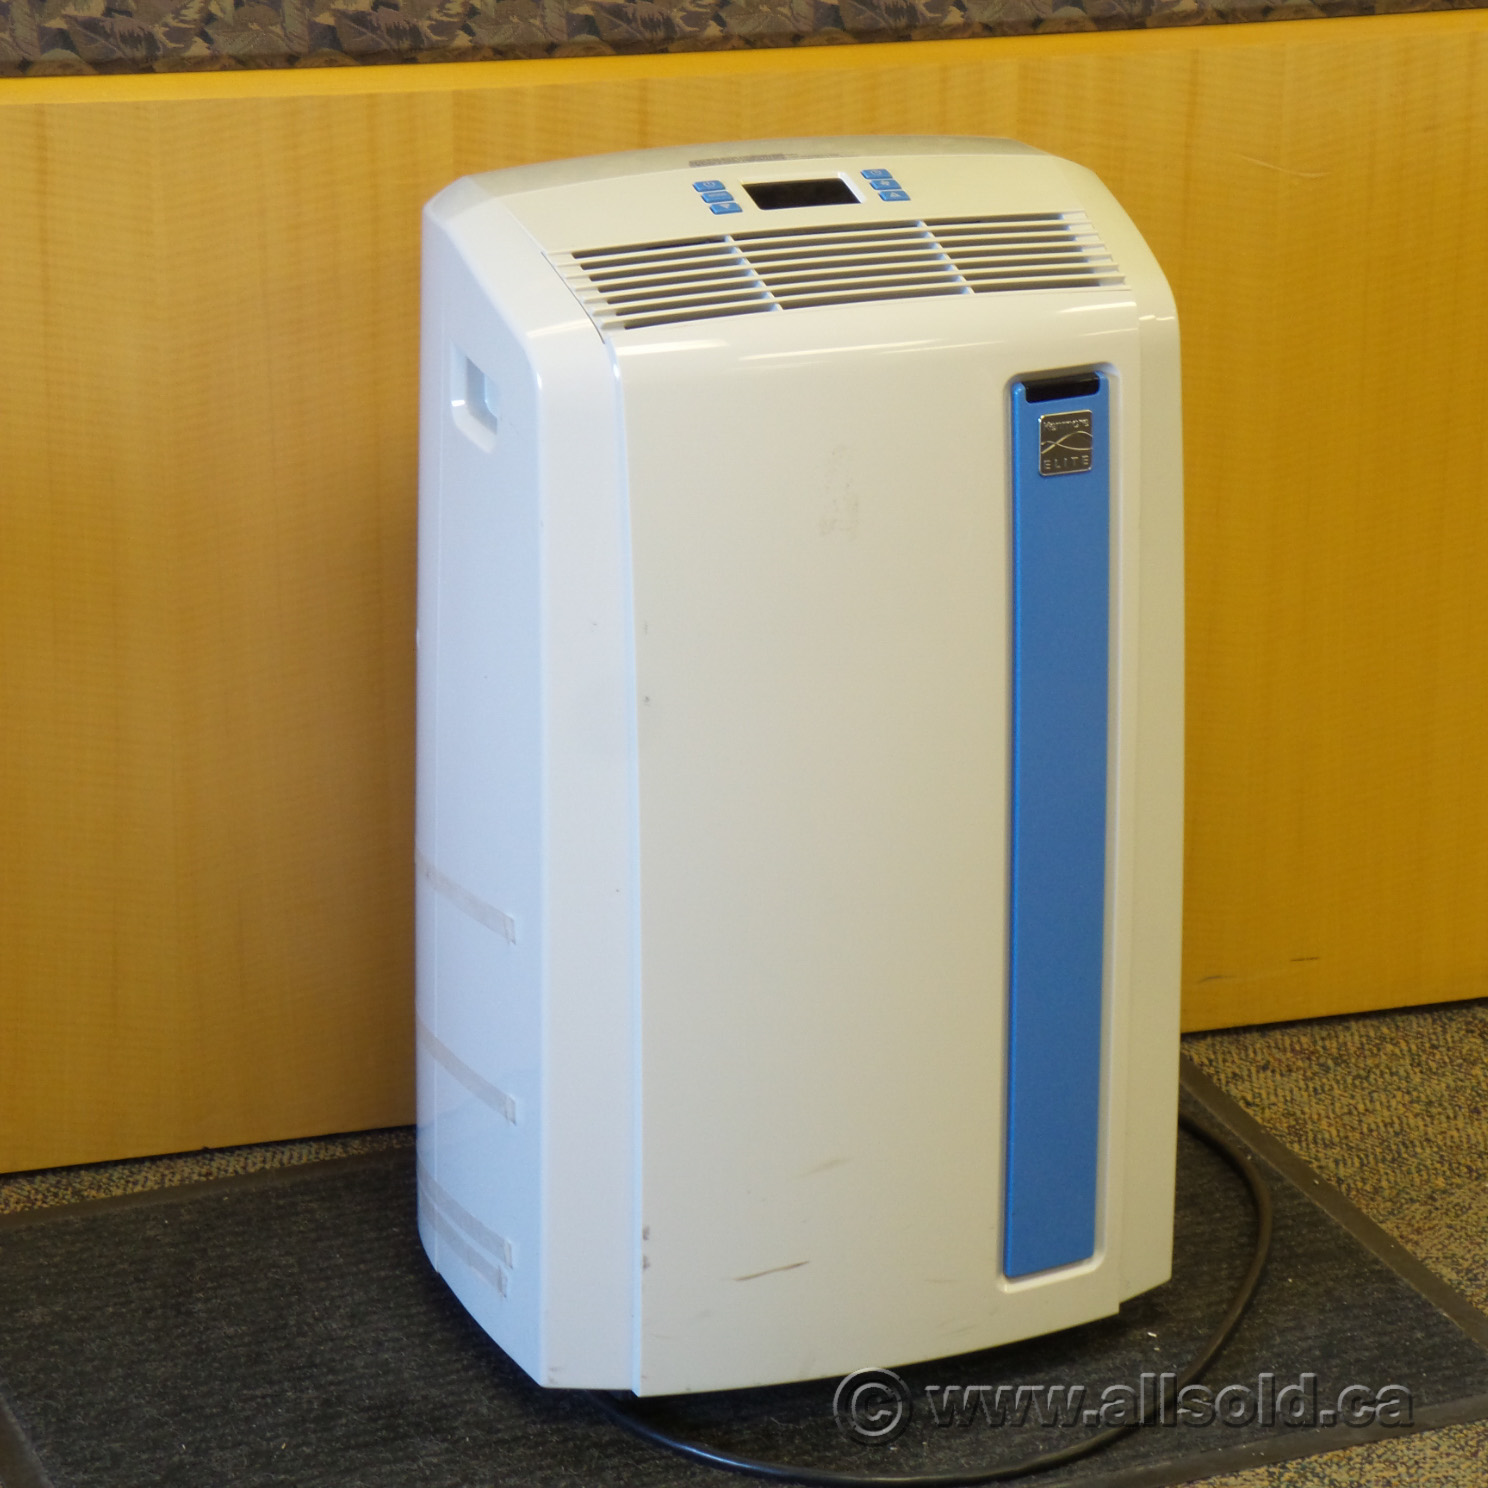 Portable Air Conditioner 12000 Btu Kenmore Elite 12000 Btu 3 In 1 Portable Air Conditioner Ac